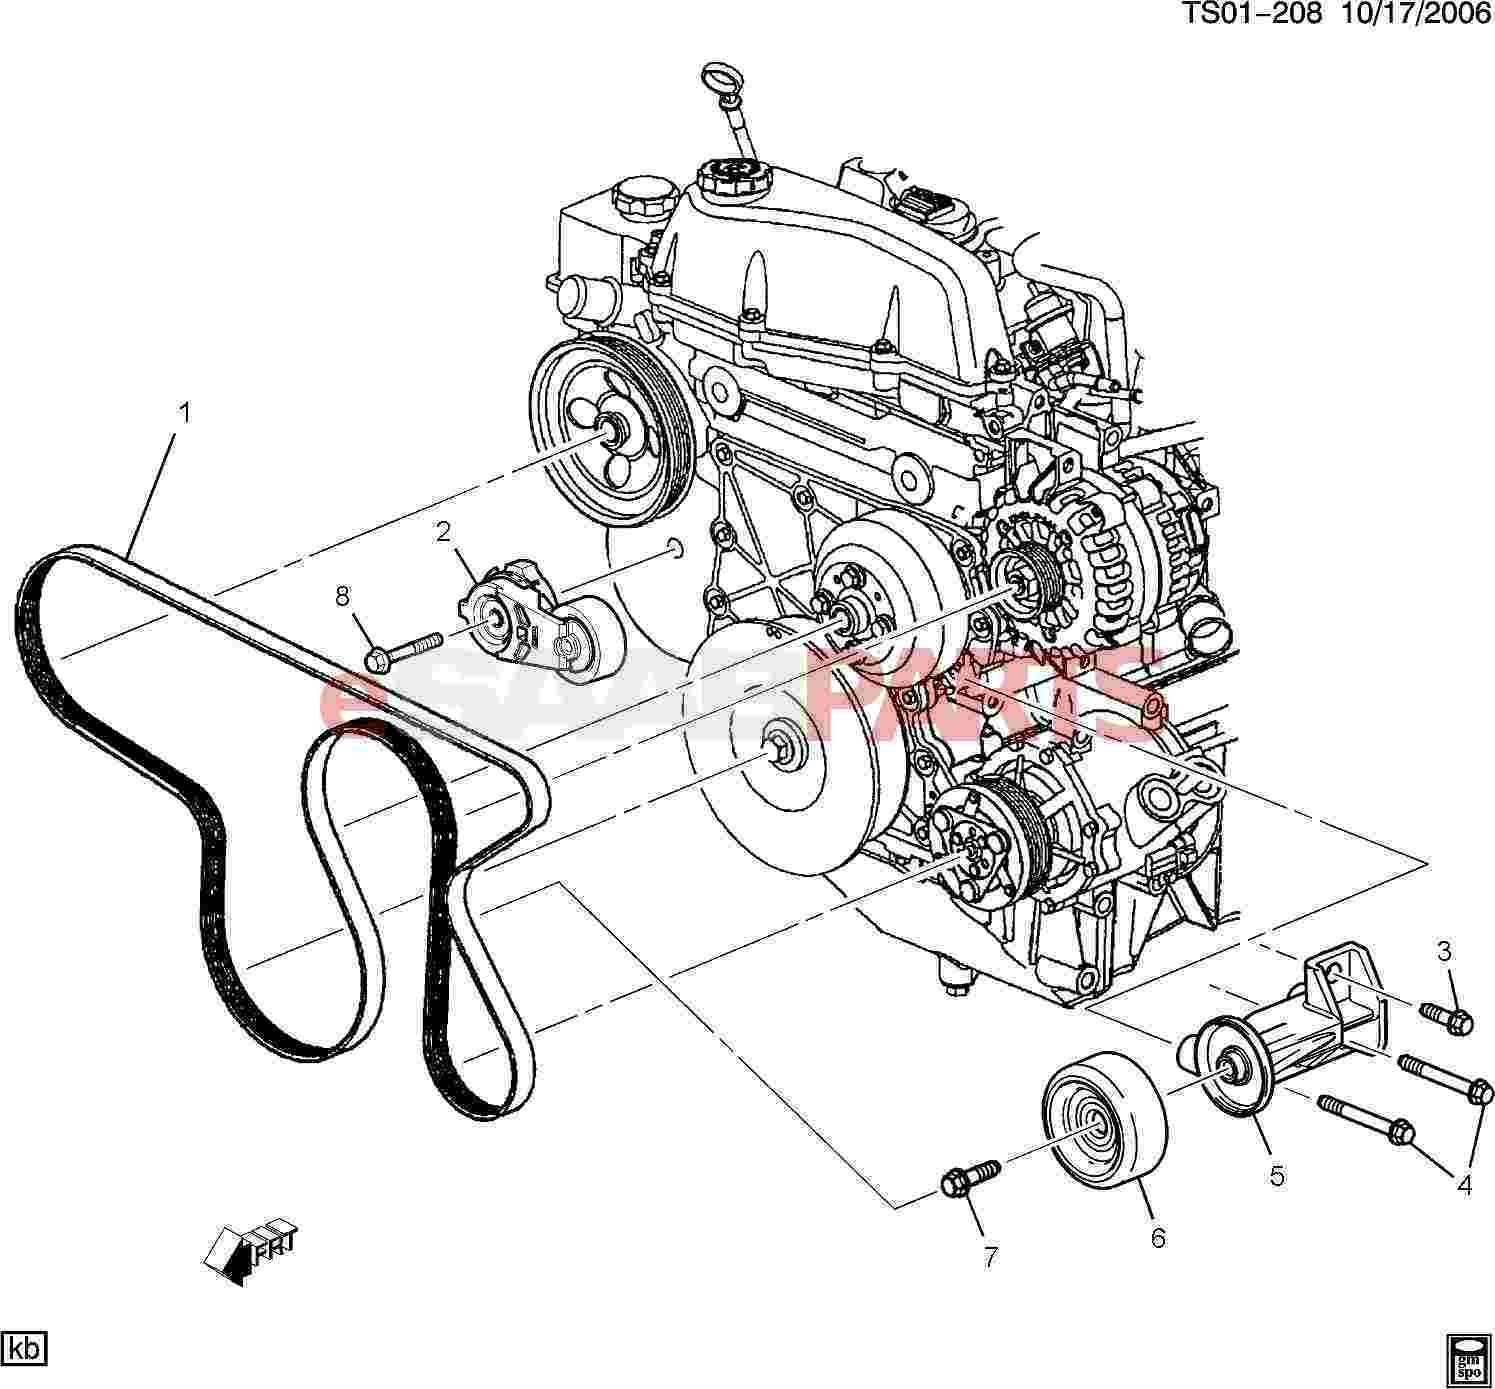 2003 Gmc Envoy Parts Diagram Engine Plugs - wiring diagram quit-sequence -  quit-sequence.bibidi-bobidi-bu.it | 2005 Gmc Yukon Engine Wiring Diagram |  | bibidi-bobidi-bu.it